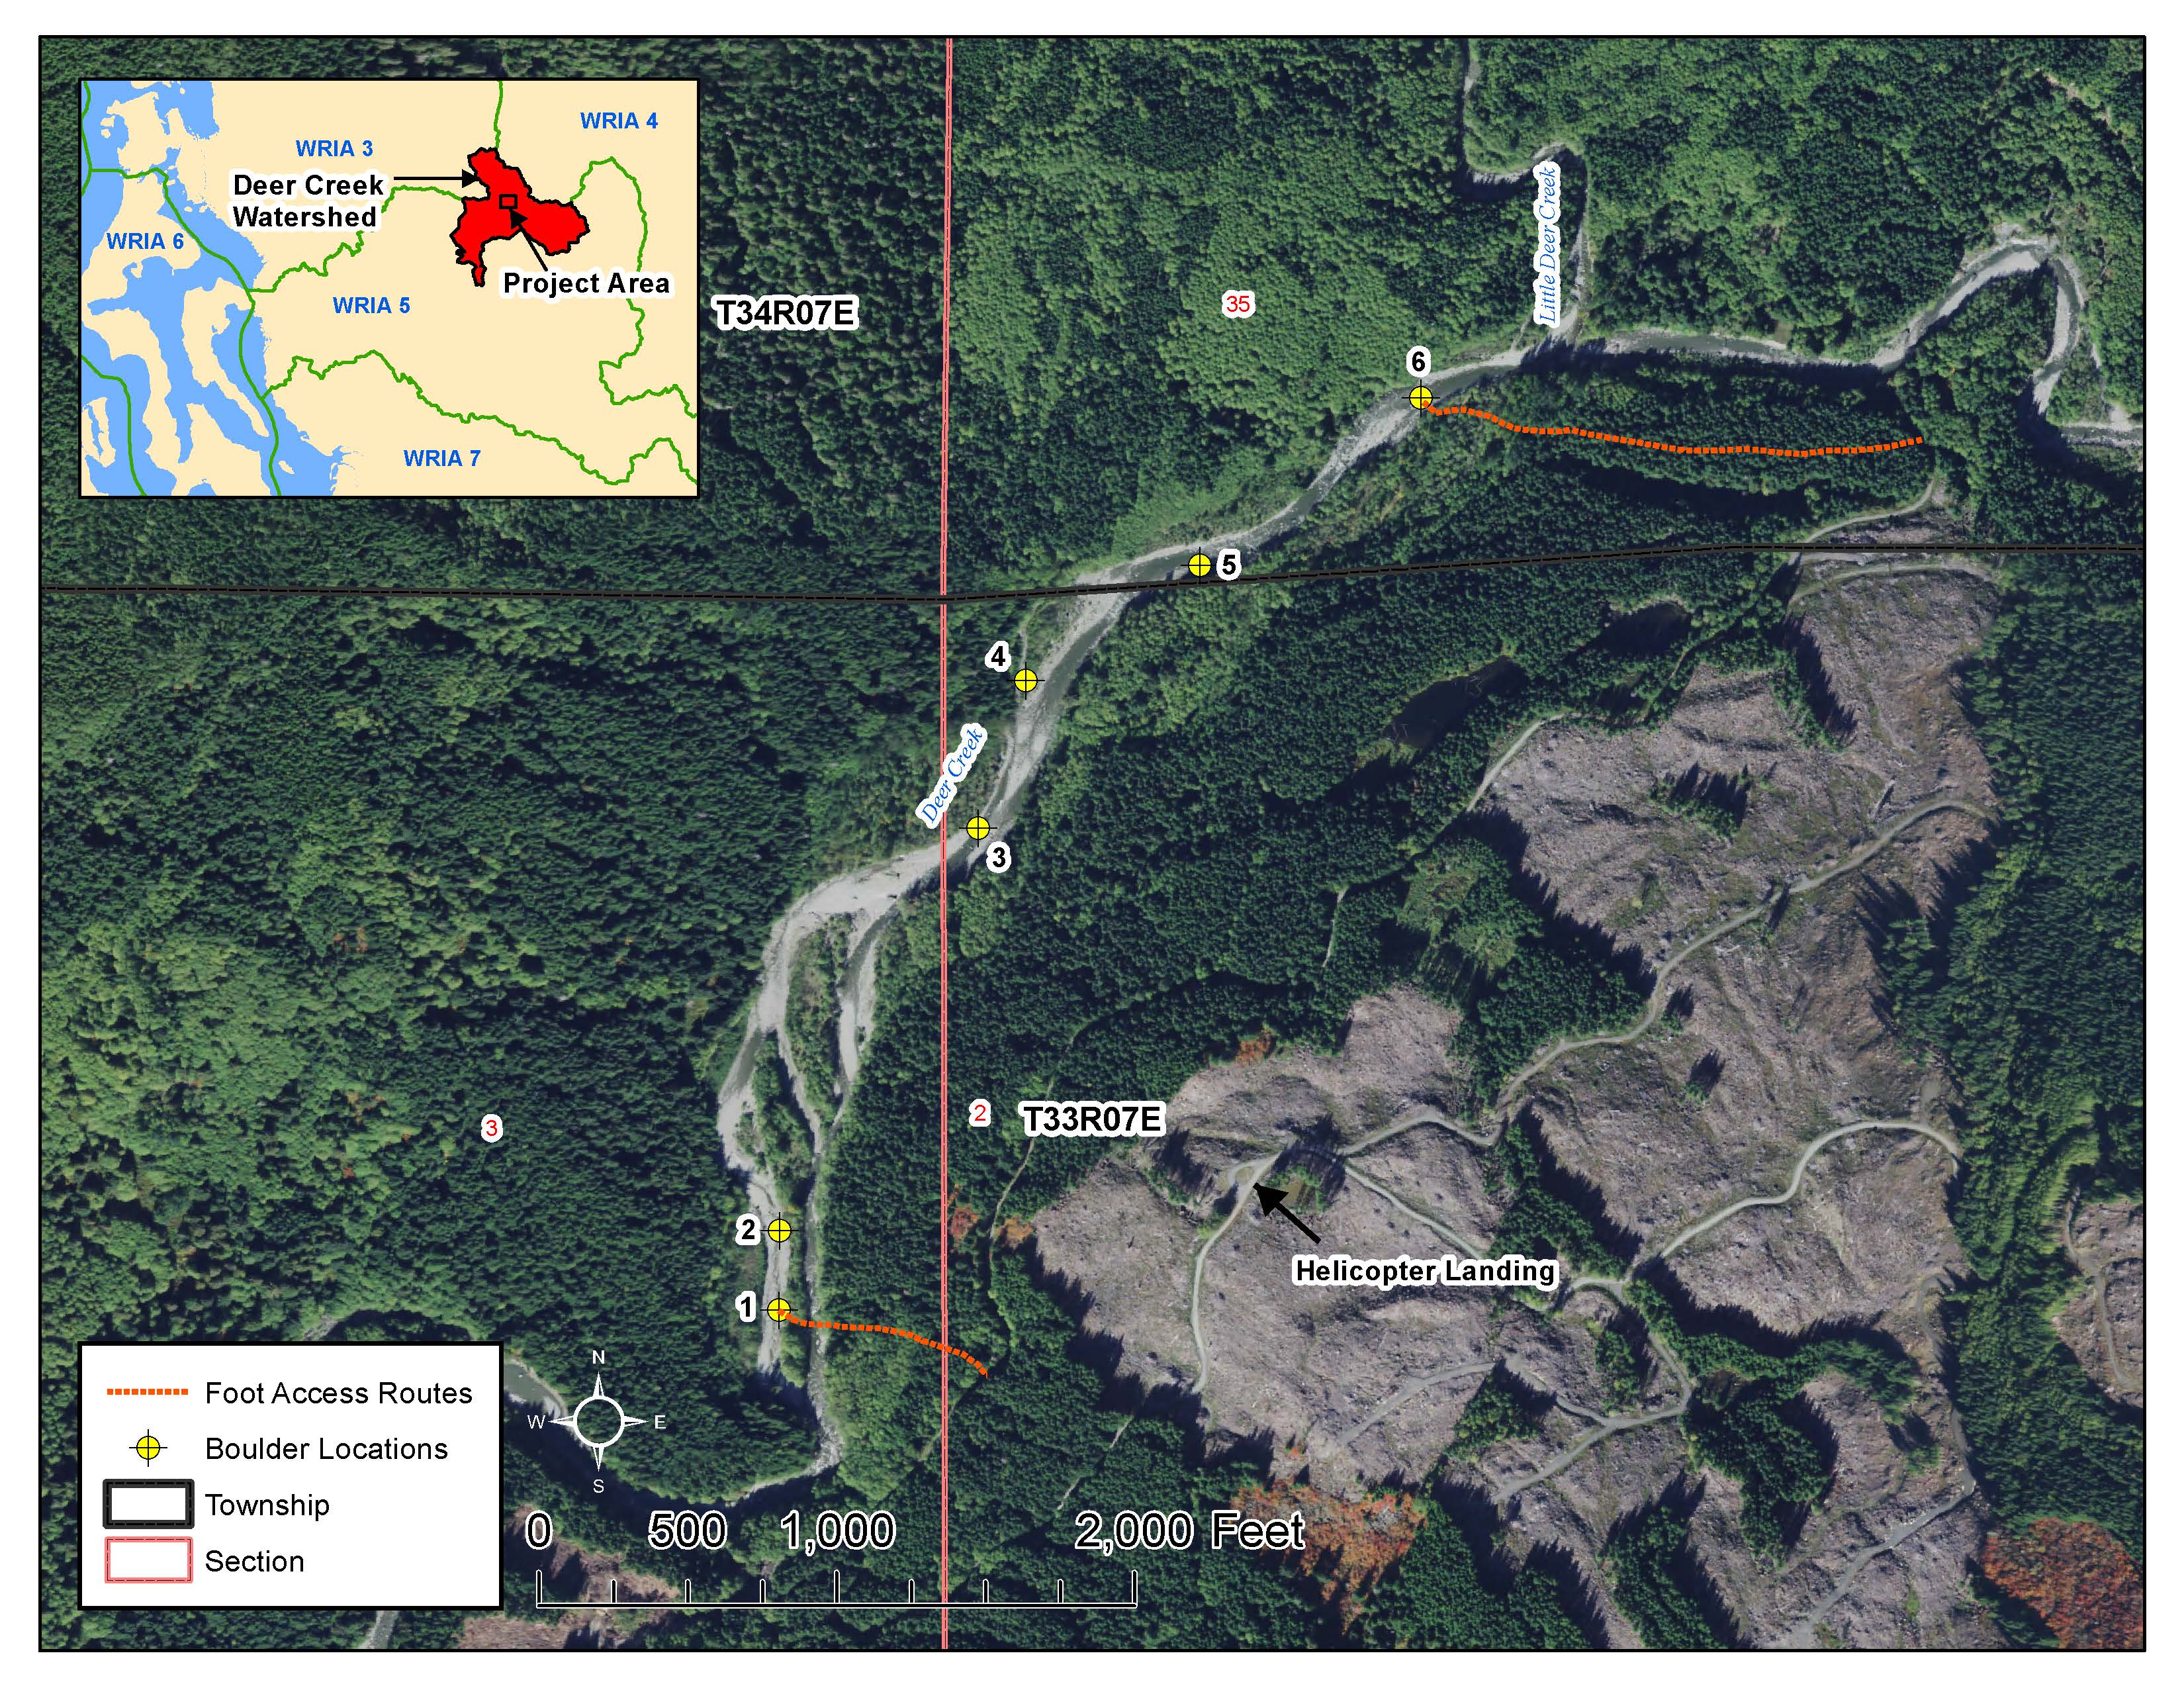 Deer Creek restoration map